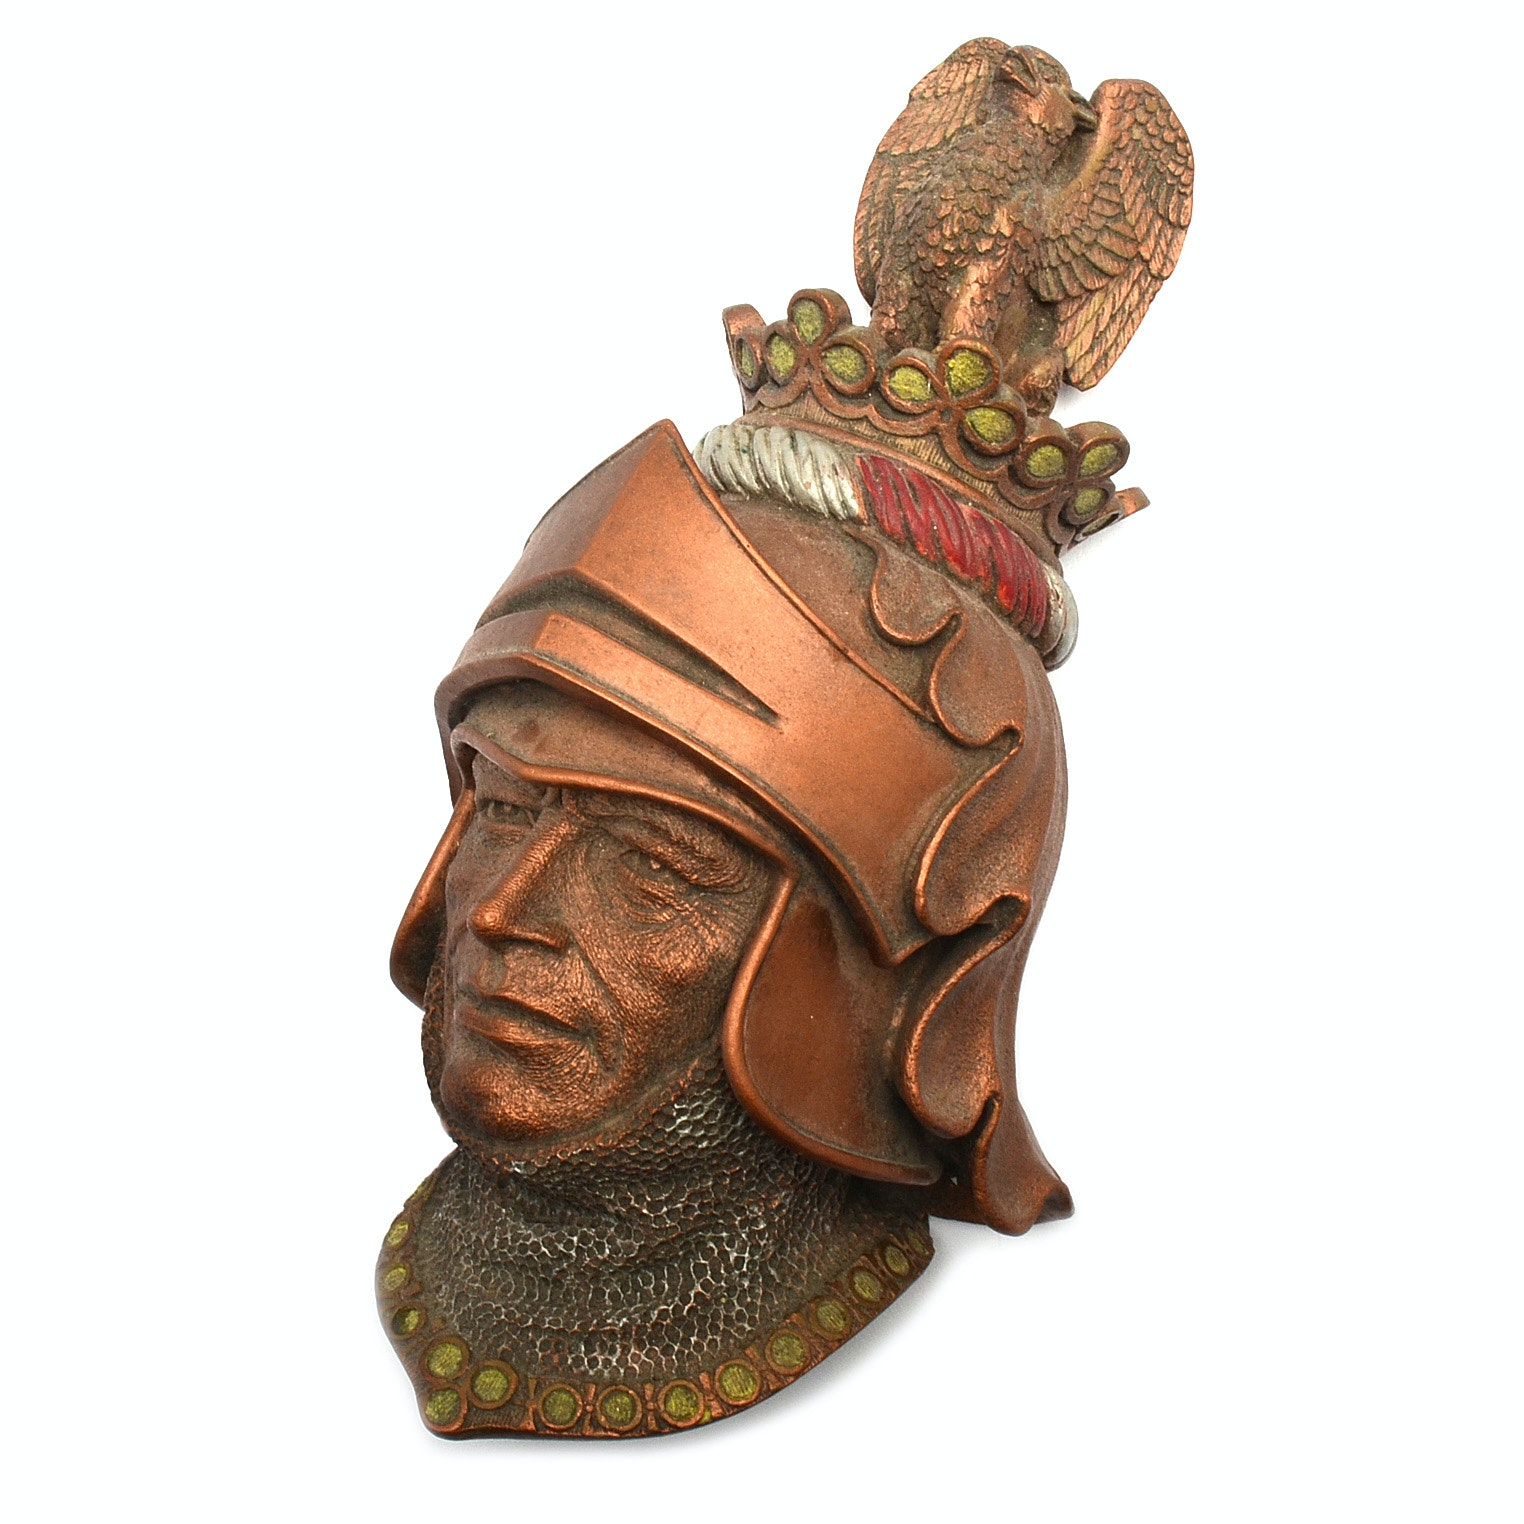 1972 Roman Or Greek Soldier Decorative Wall Plaque